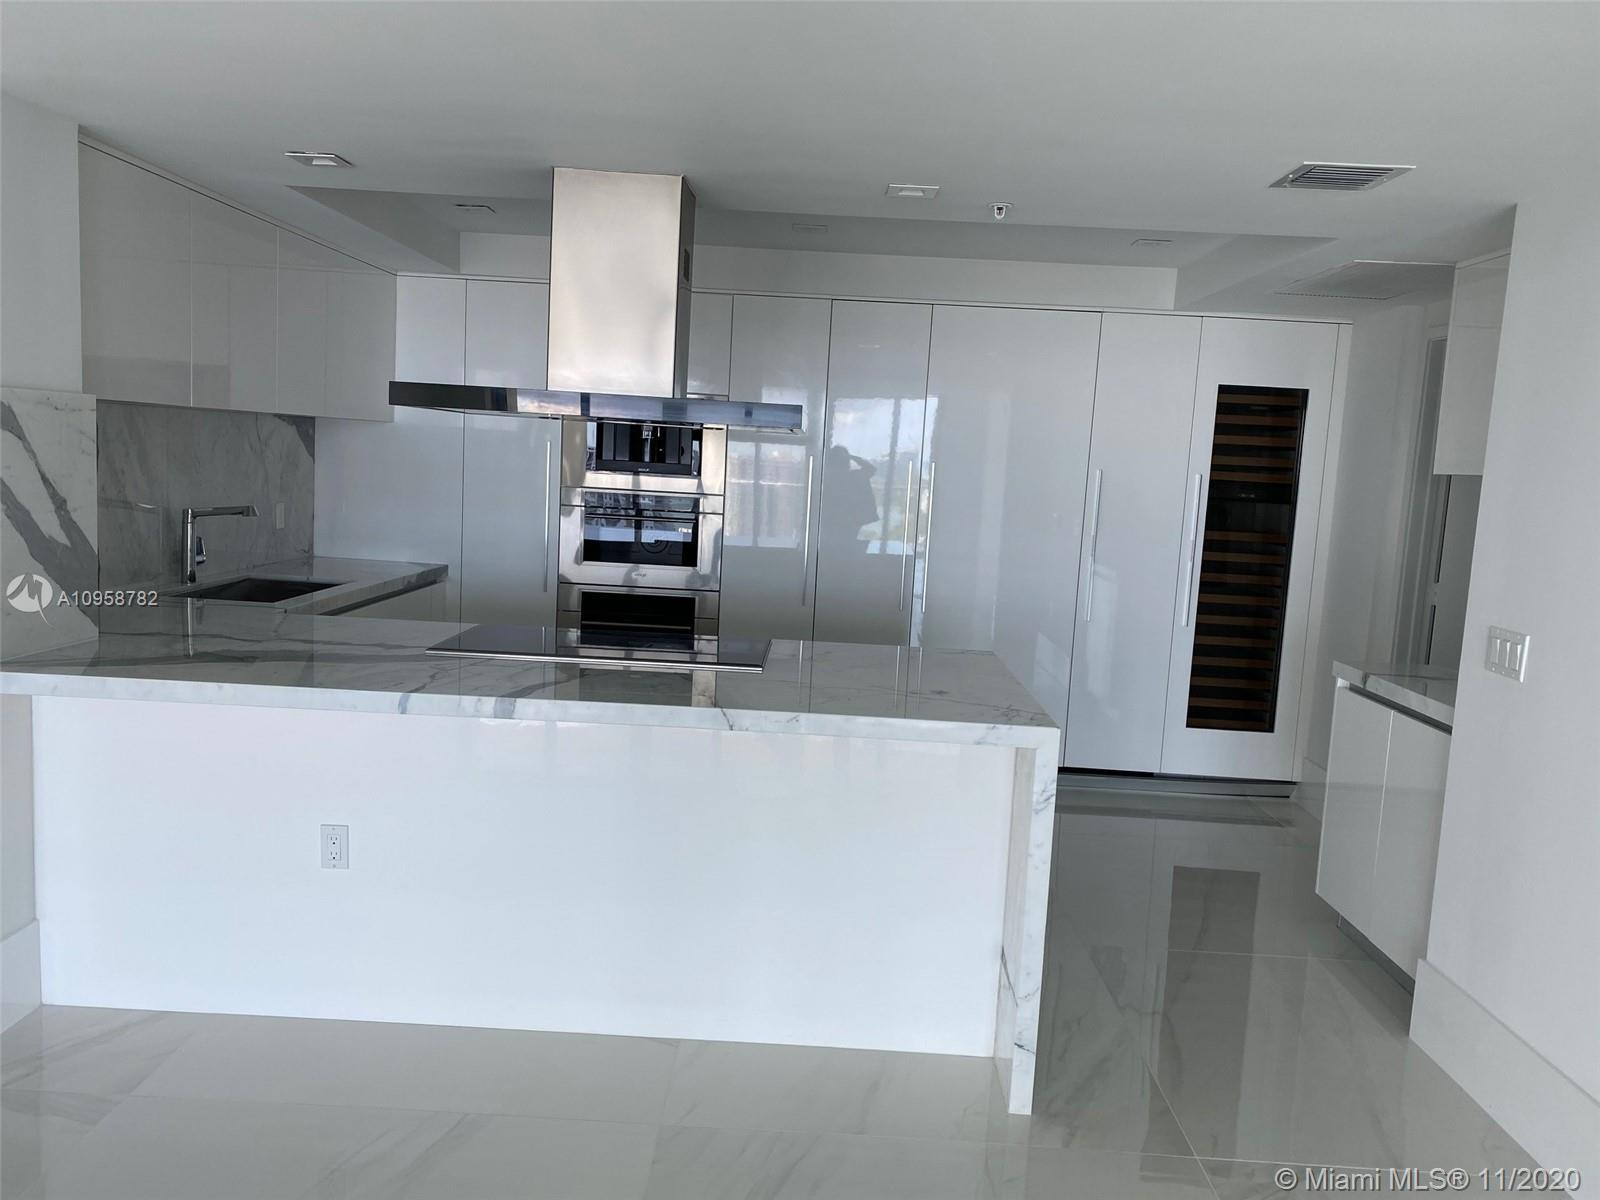 This is a fully upgraded BRAND NEW penthouse unit with 4 bedrooms and 4.5 bathrooms. Beautifully and